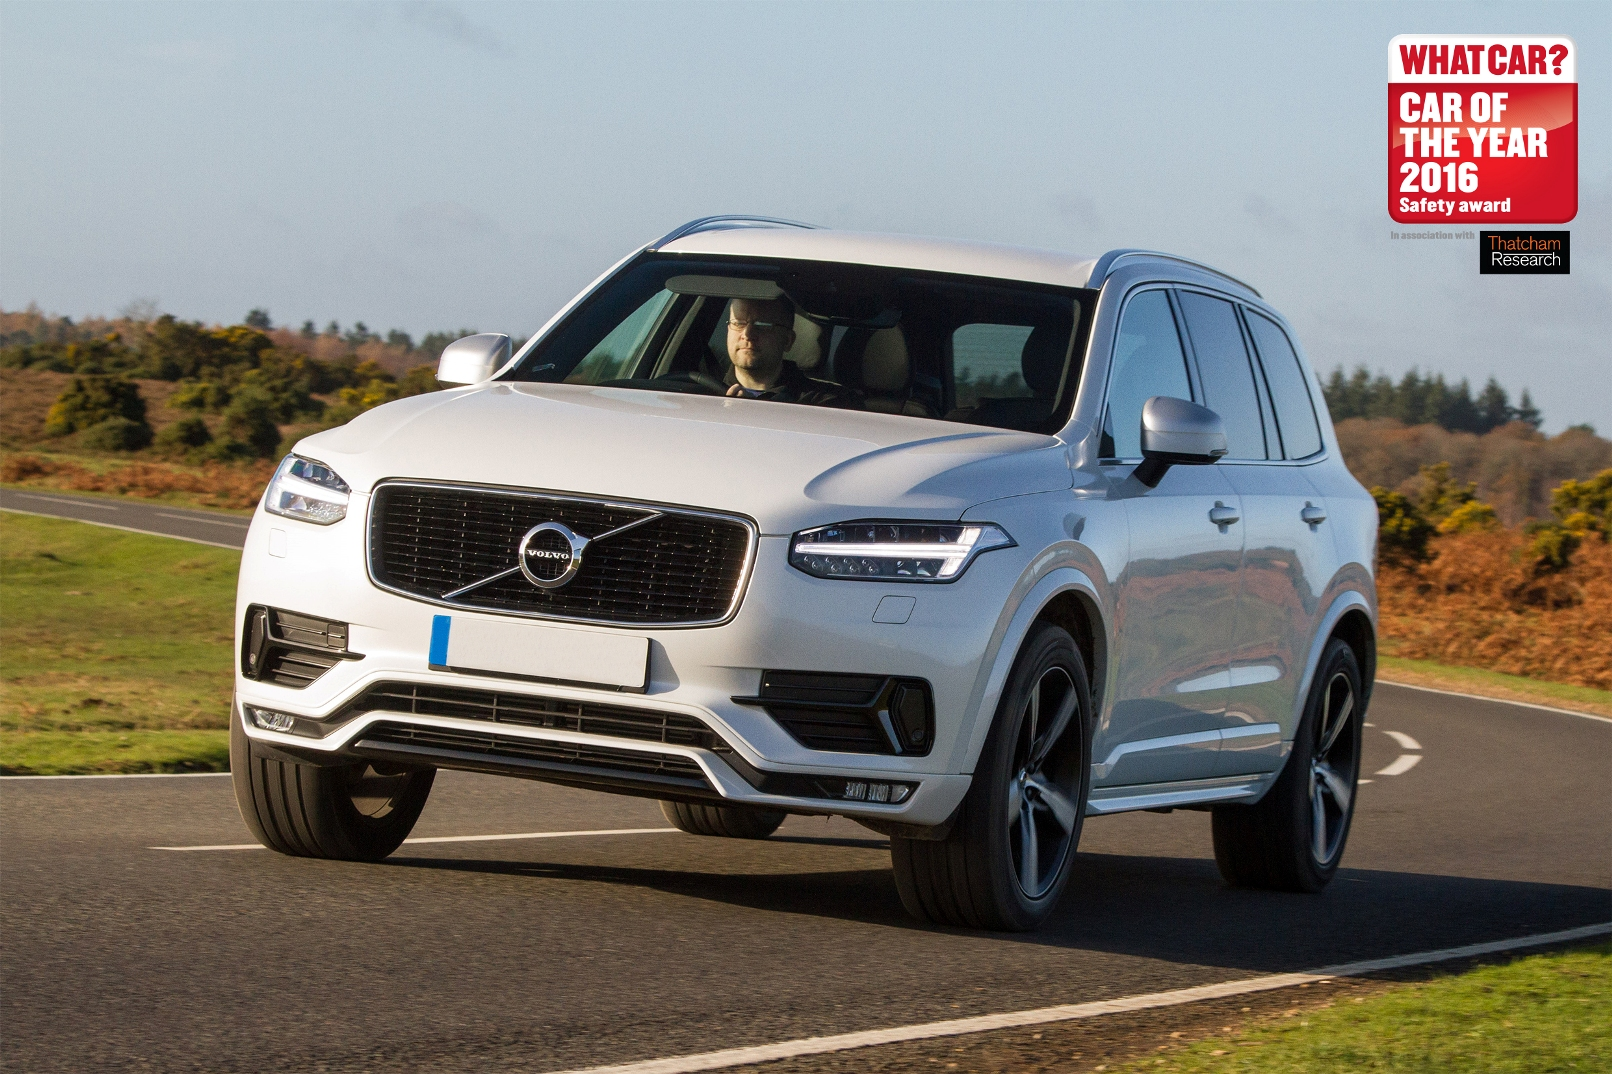 Volvo XC90 Winner of 2016 Car of the Year